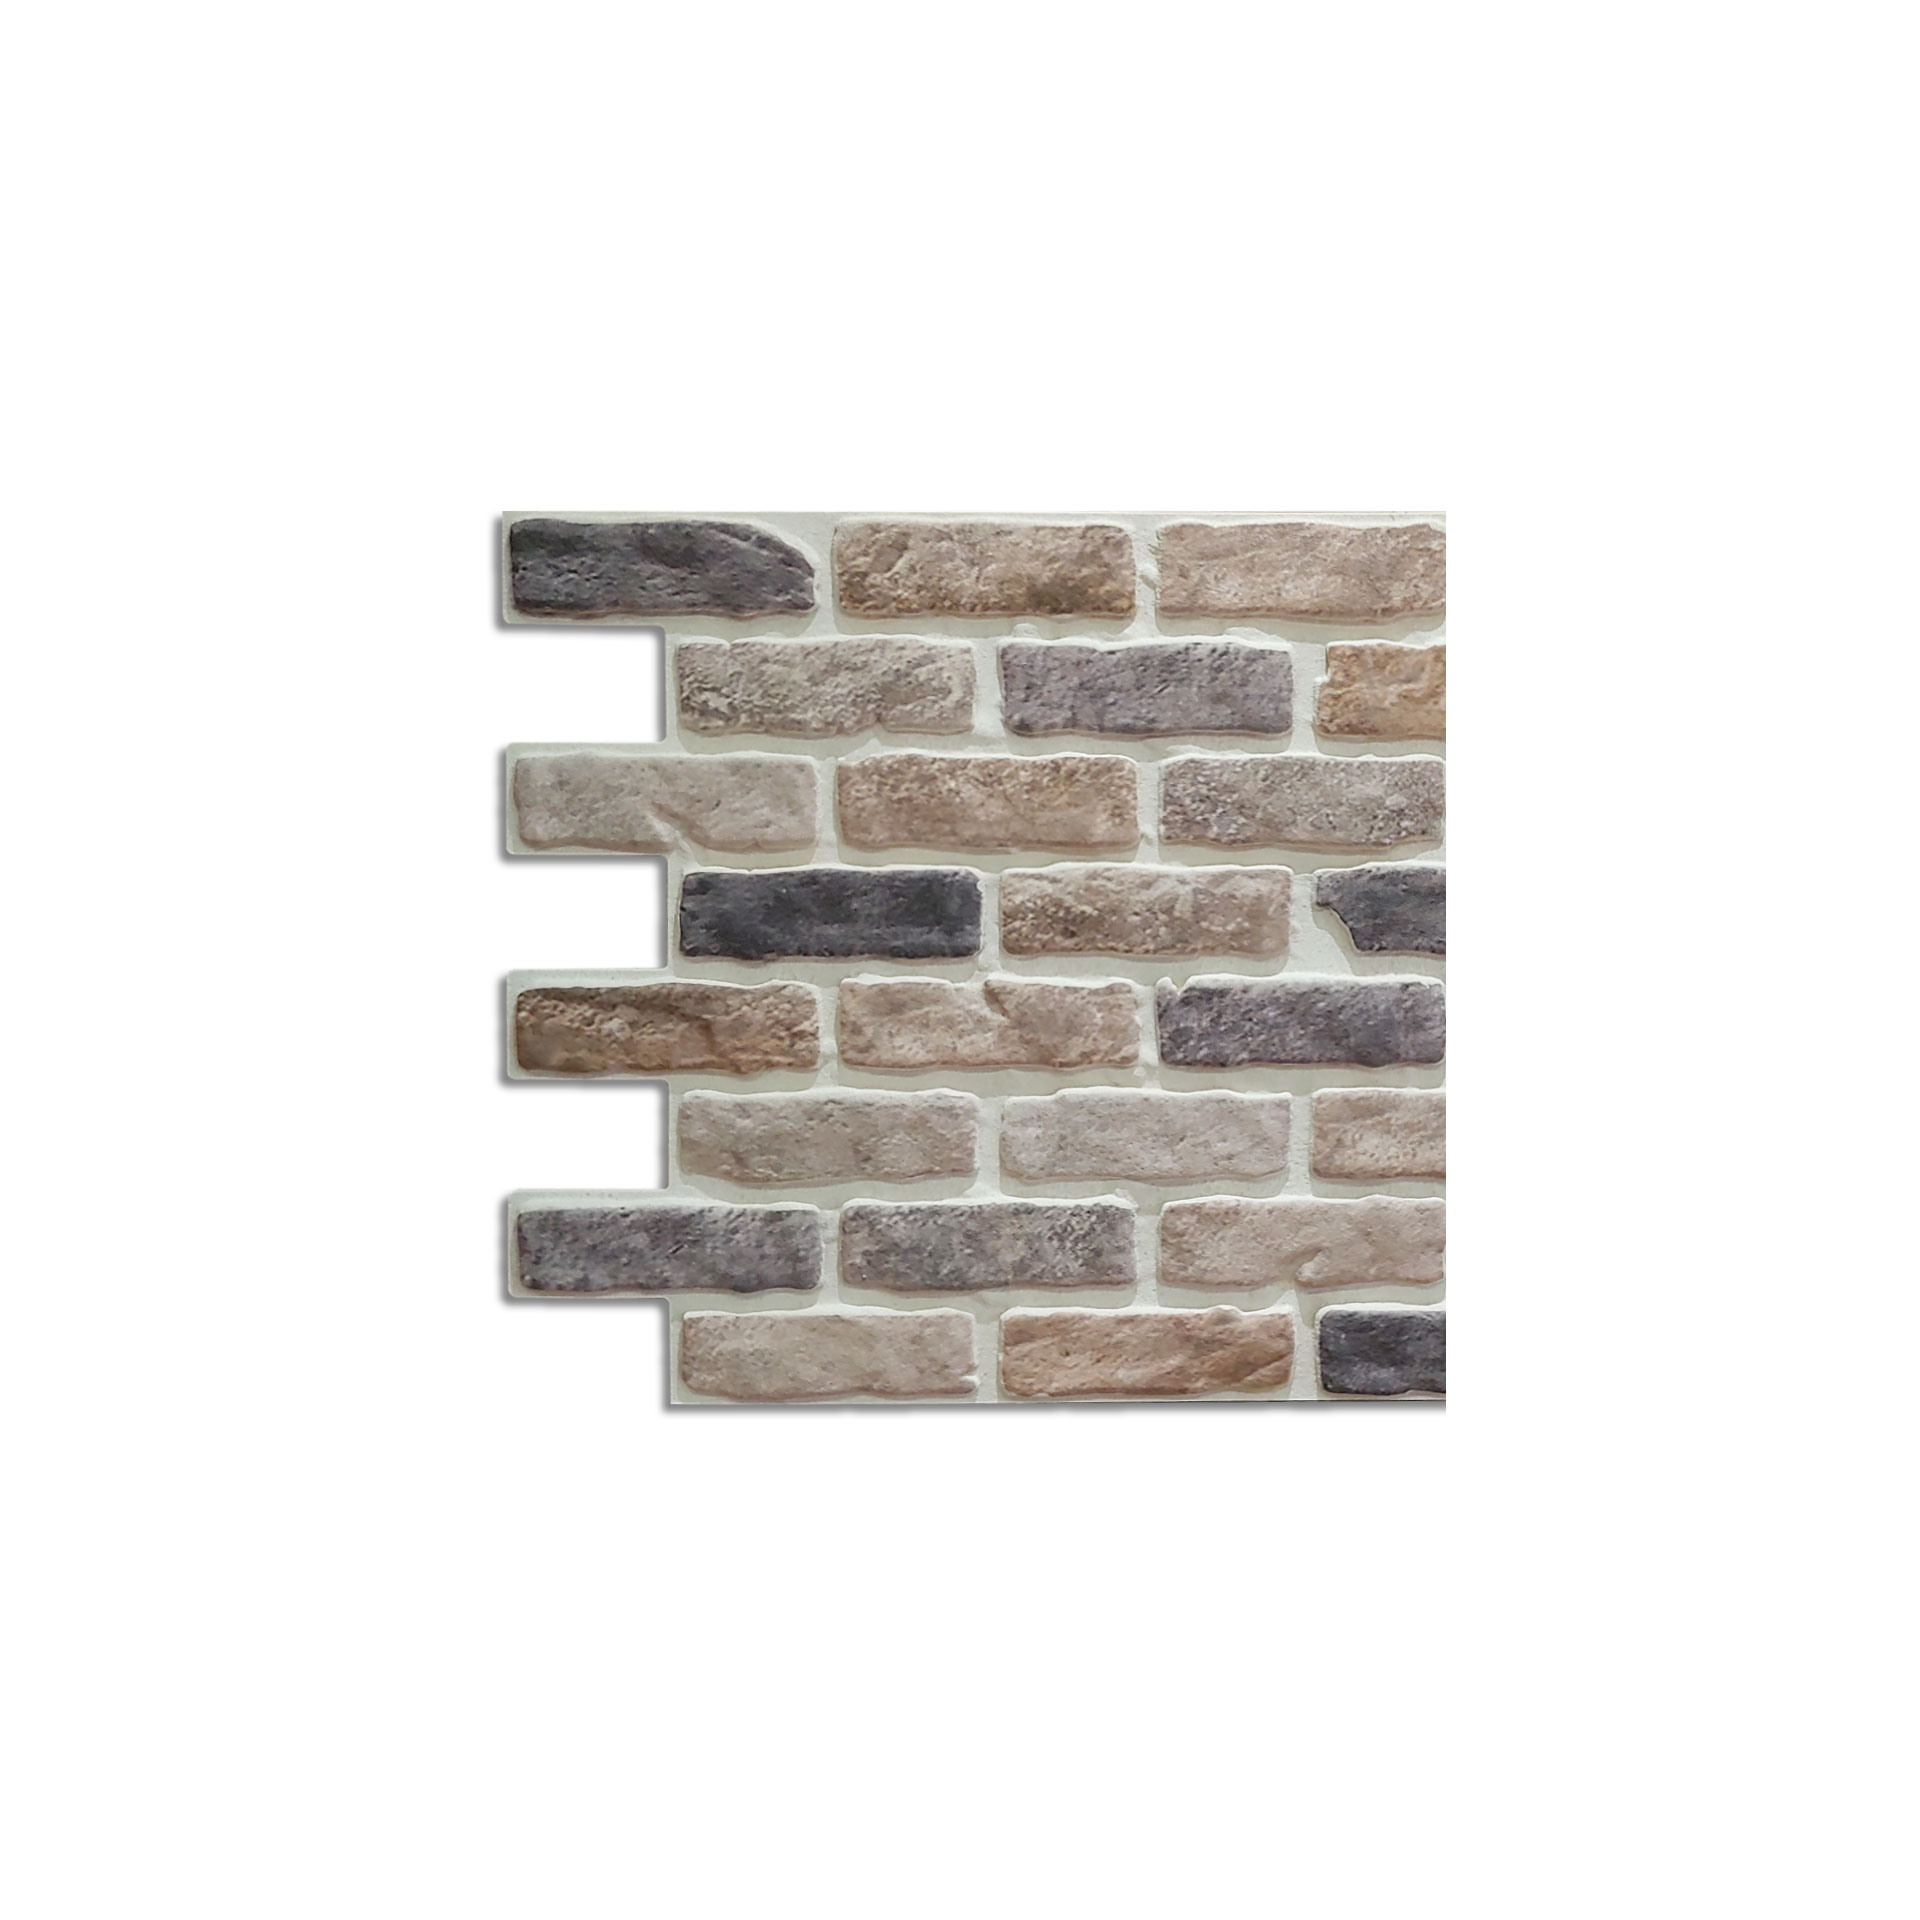 Covered Brick Panel Bristol Sample